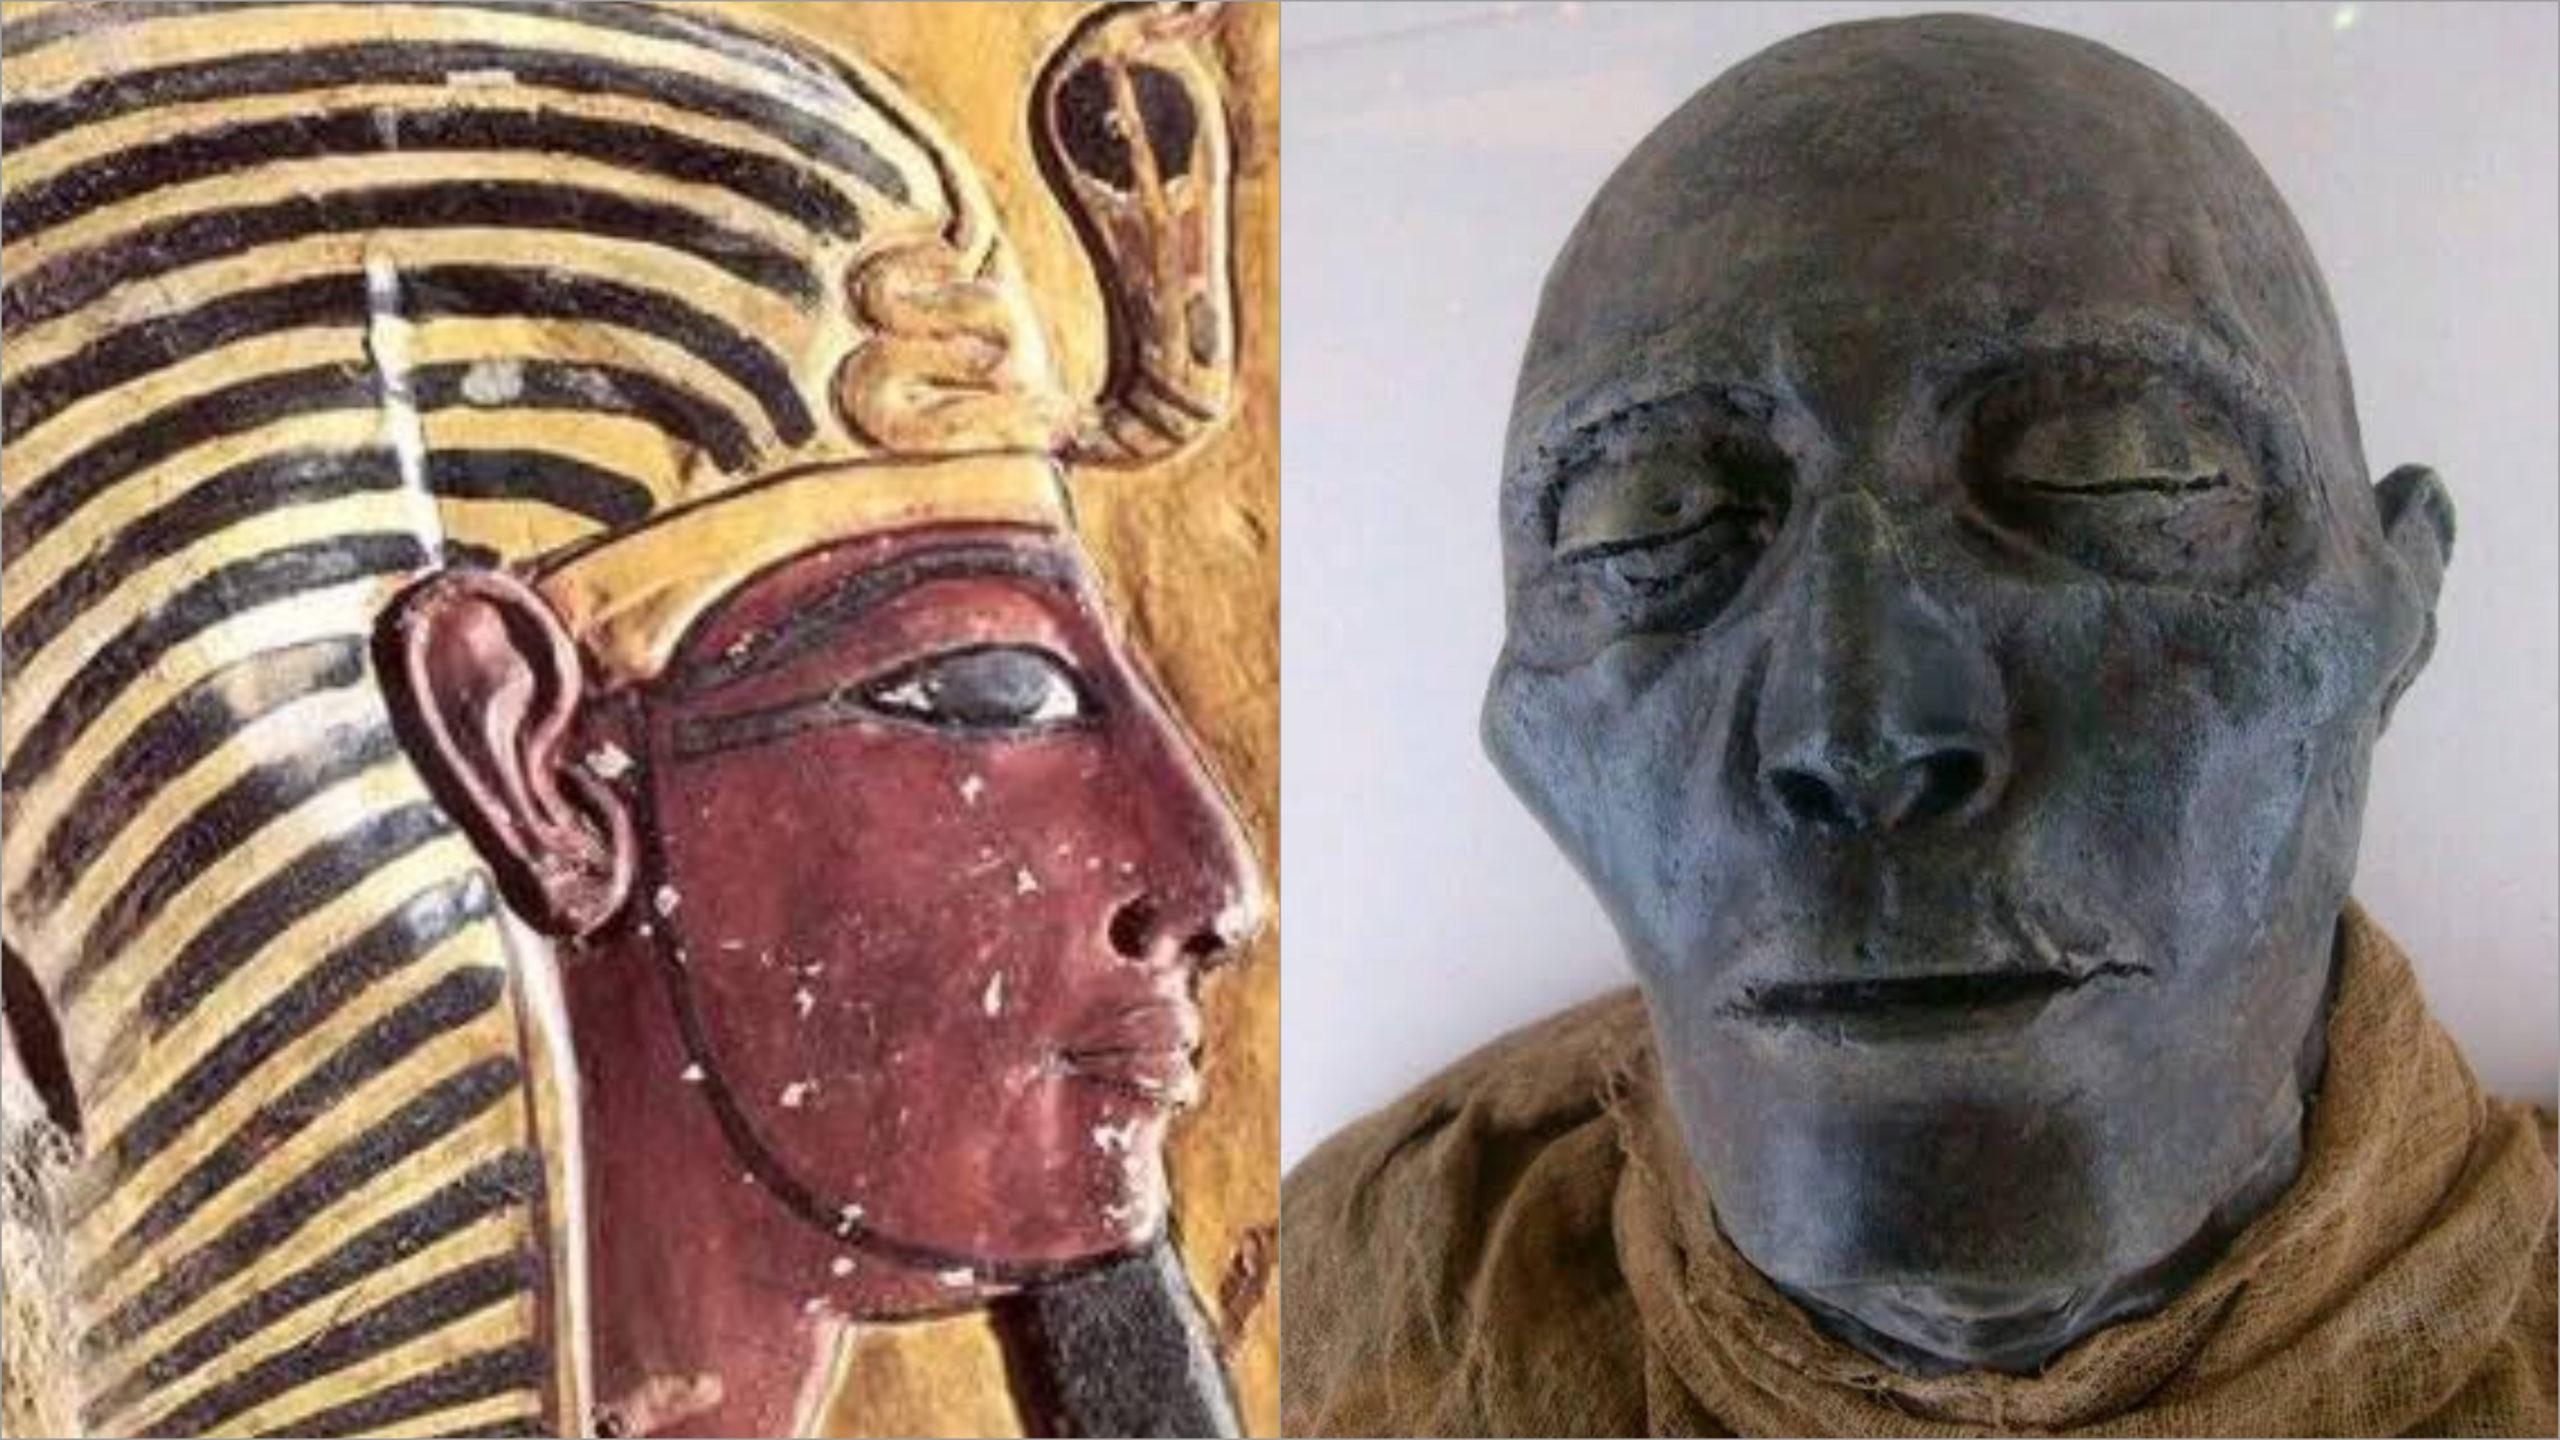 The 3298 years old mummified face of Pharaoh Seti I of Ancient Egypt (Kemet)